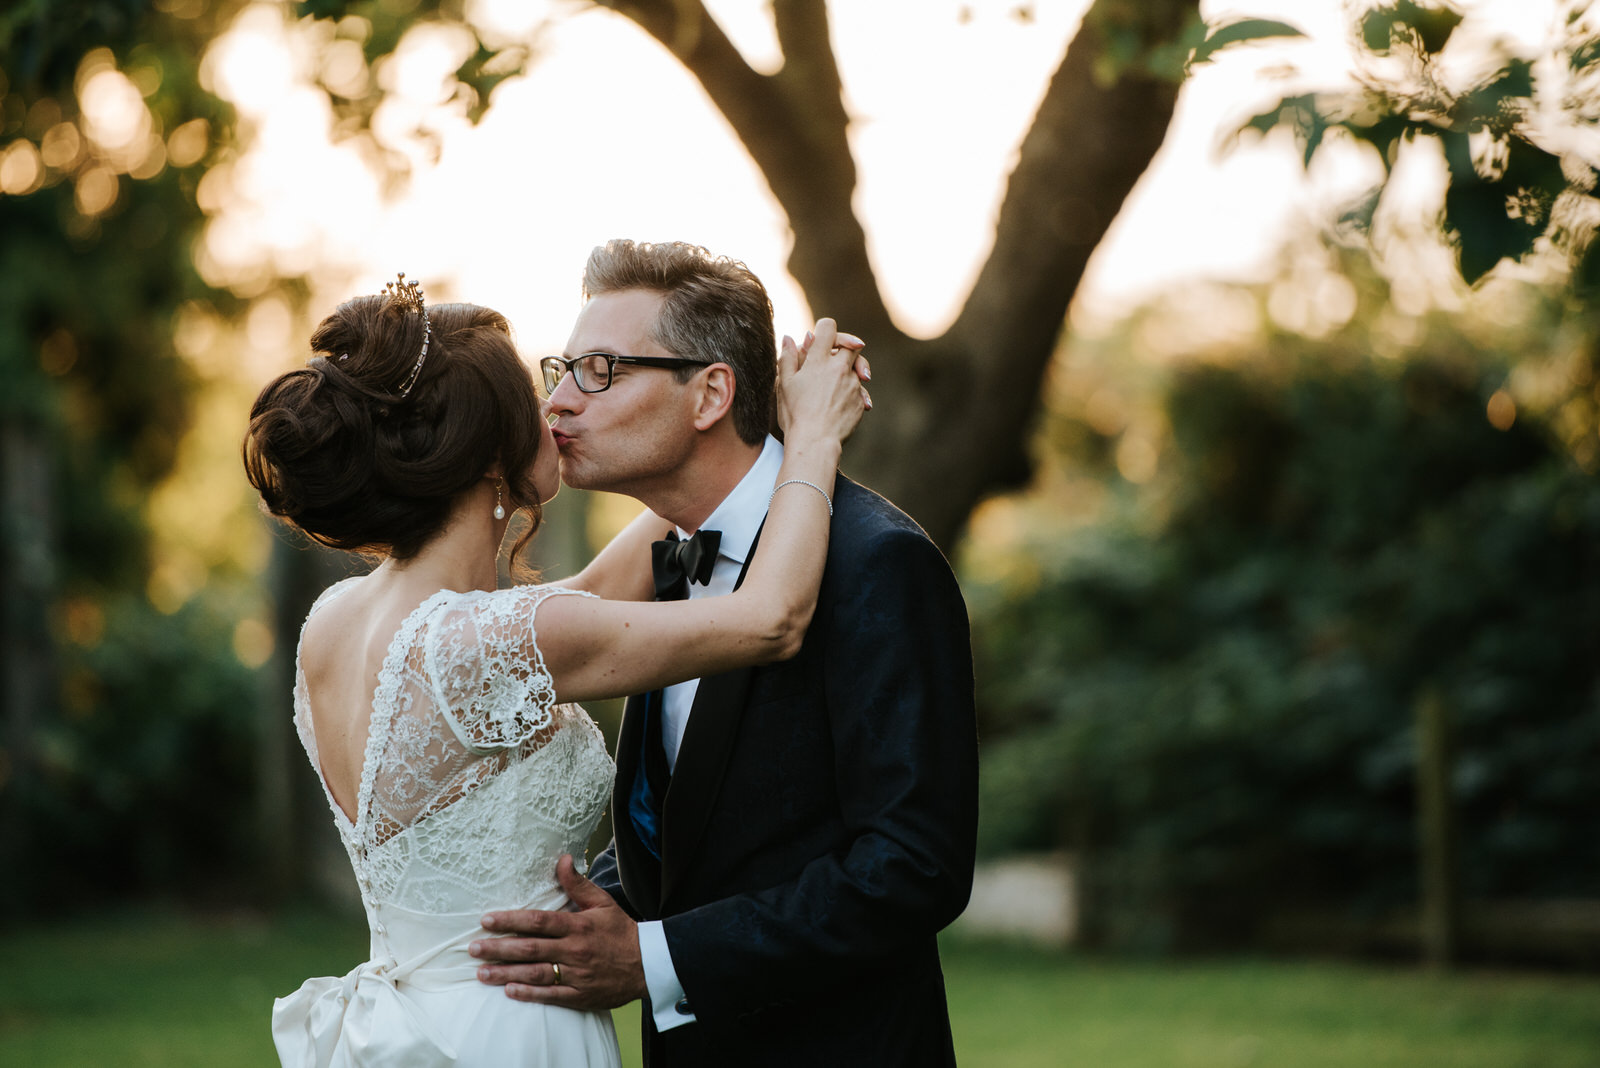 Bride and groom kiss in front of tree during portraits as sun se